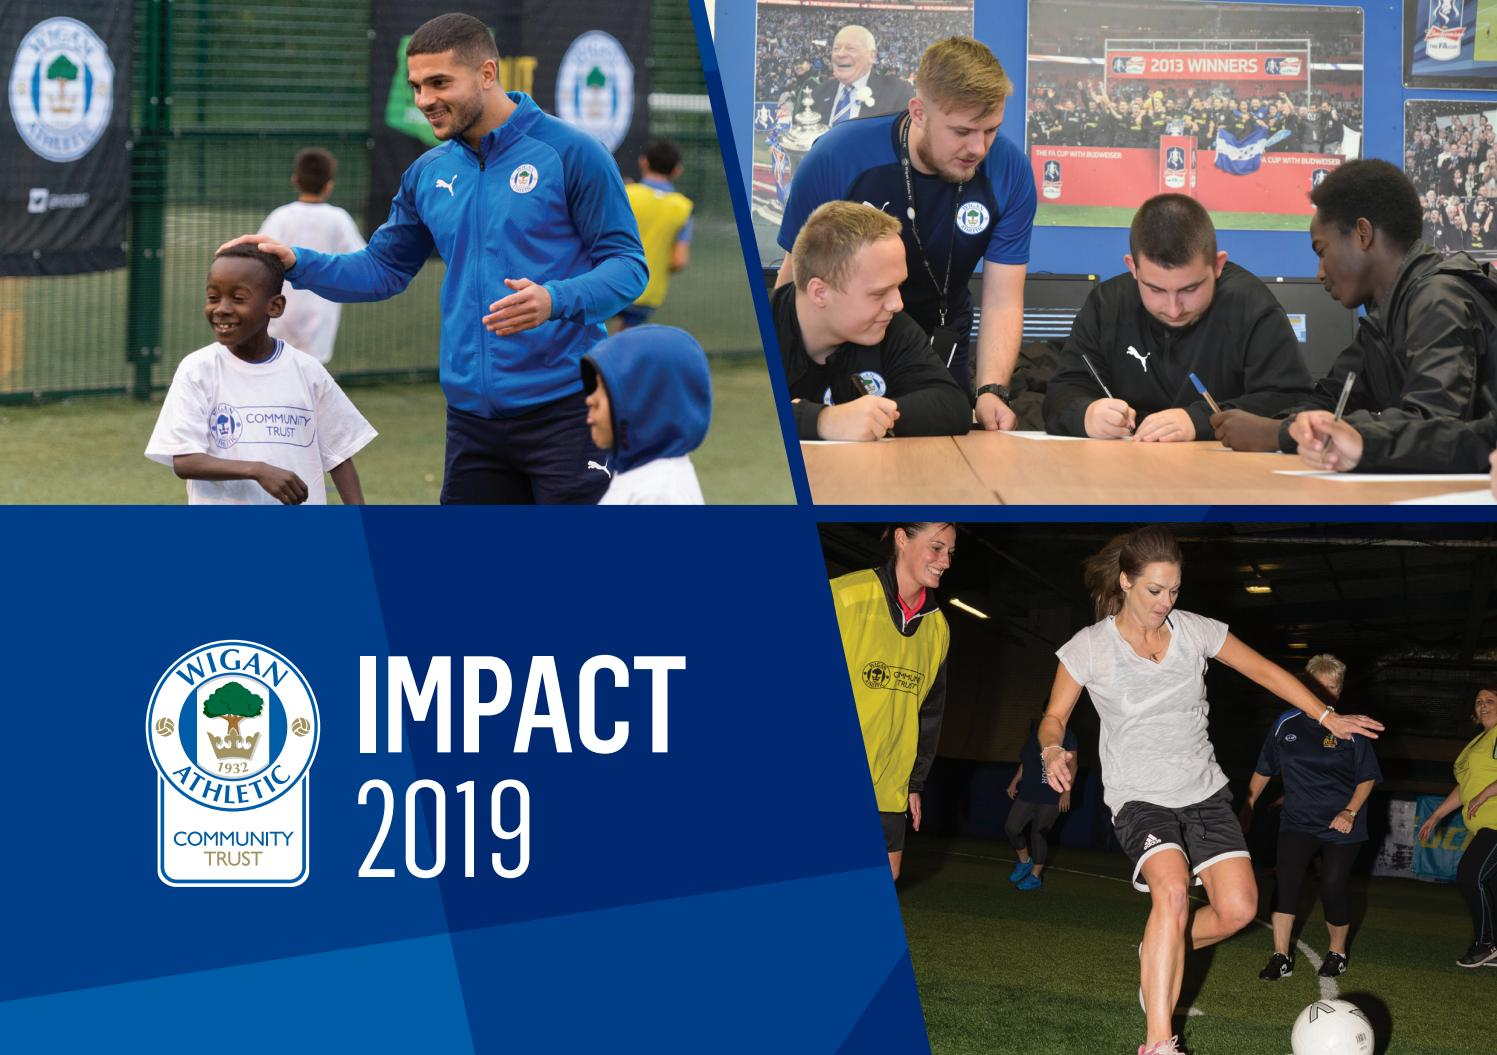 Community investment fund wigan athletic football icco investments that pay